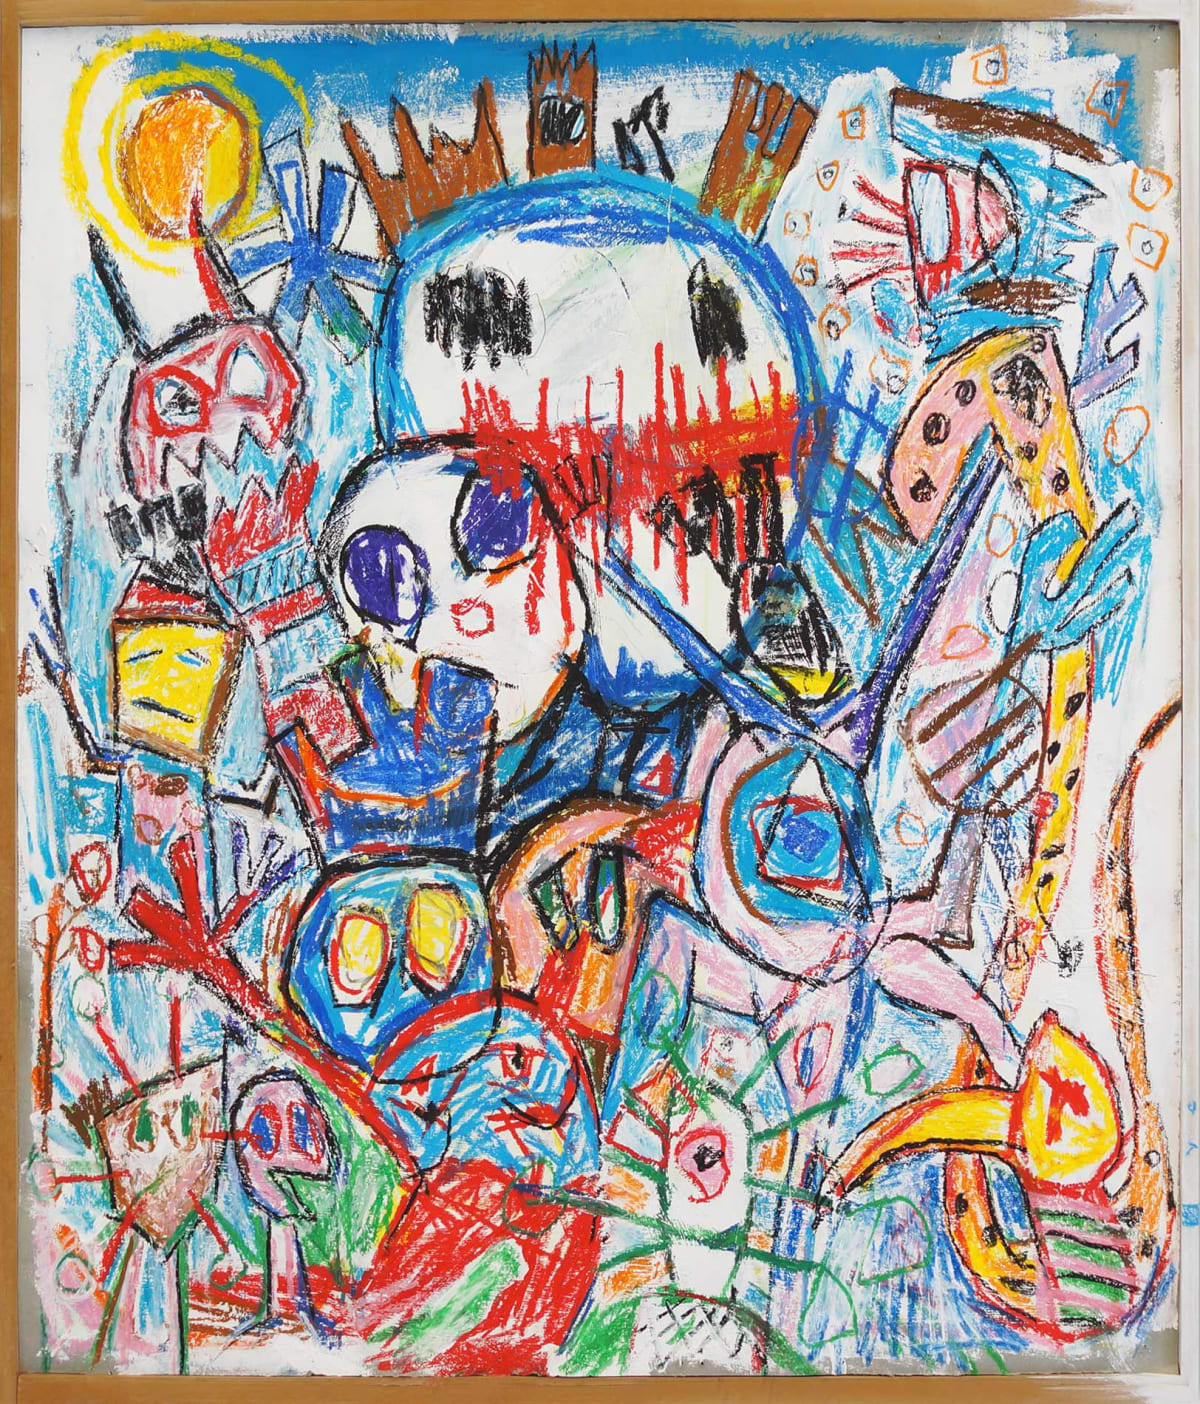 ernst koslitsch artwork show a very colorful childlike painting of various creatures and monsters